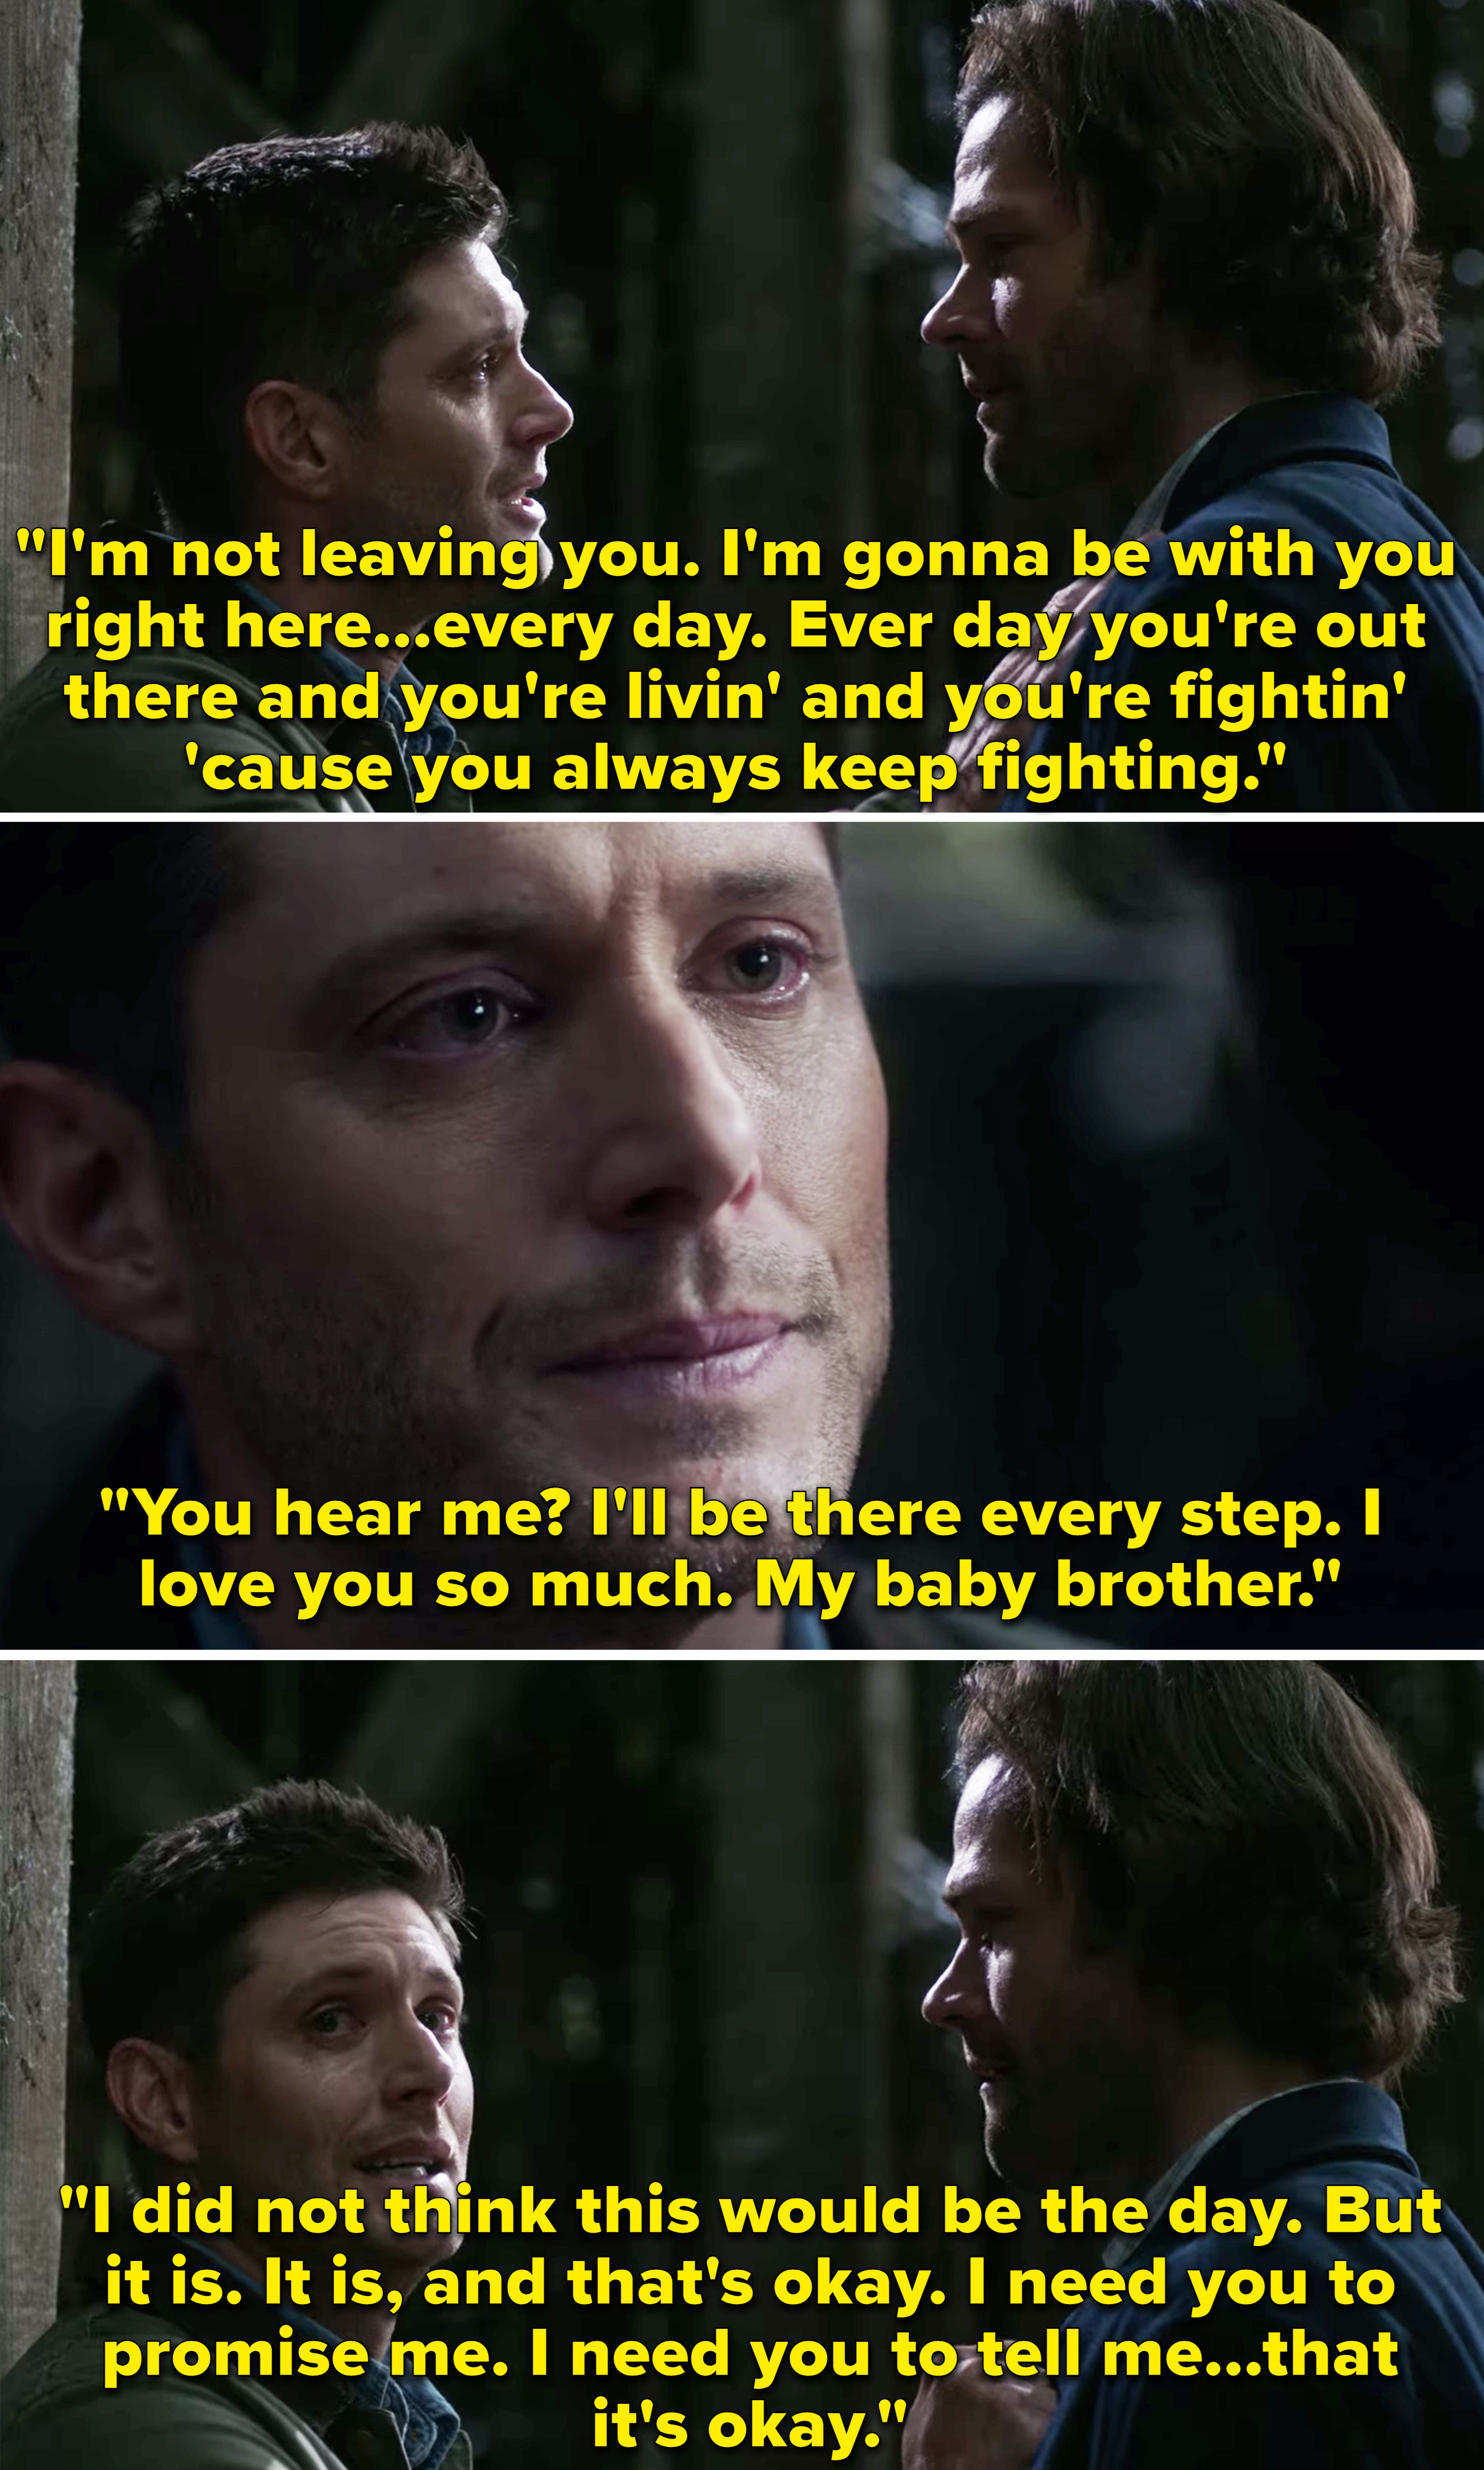 Dean telling Sam that he'll always be with him and he loves him